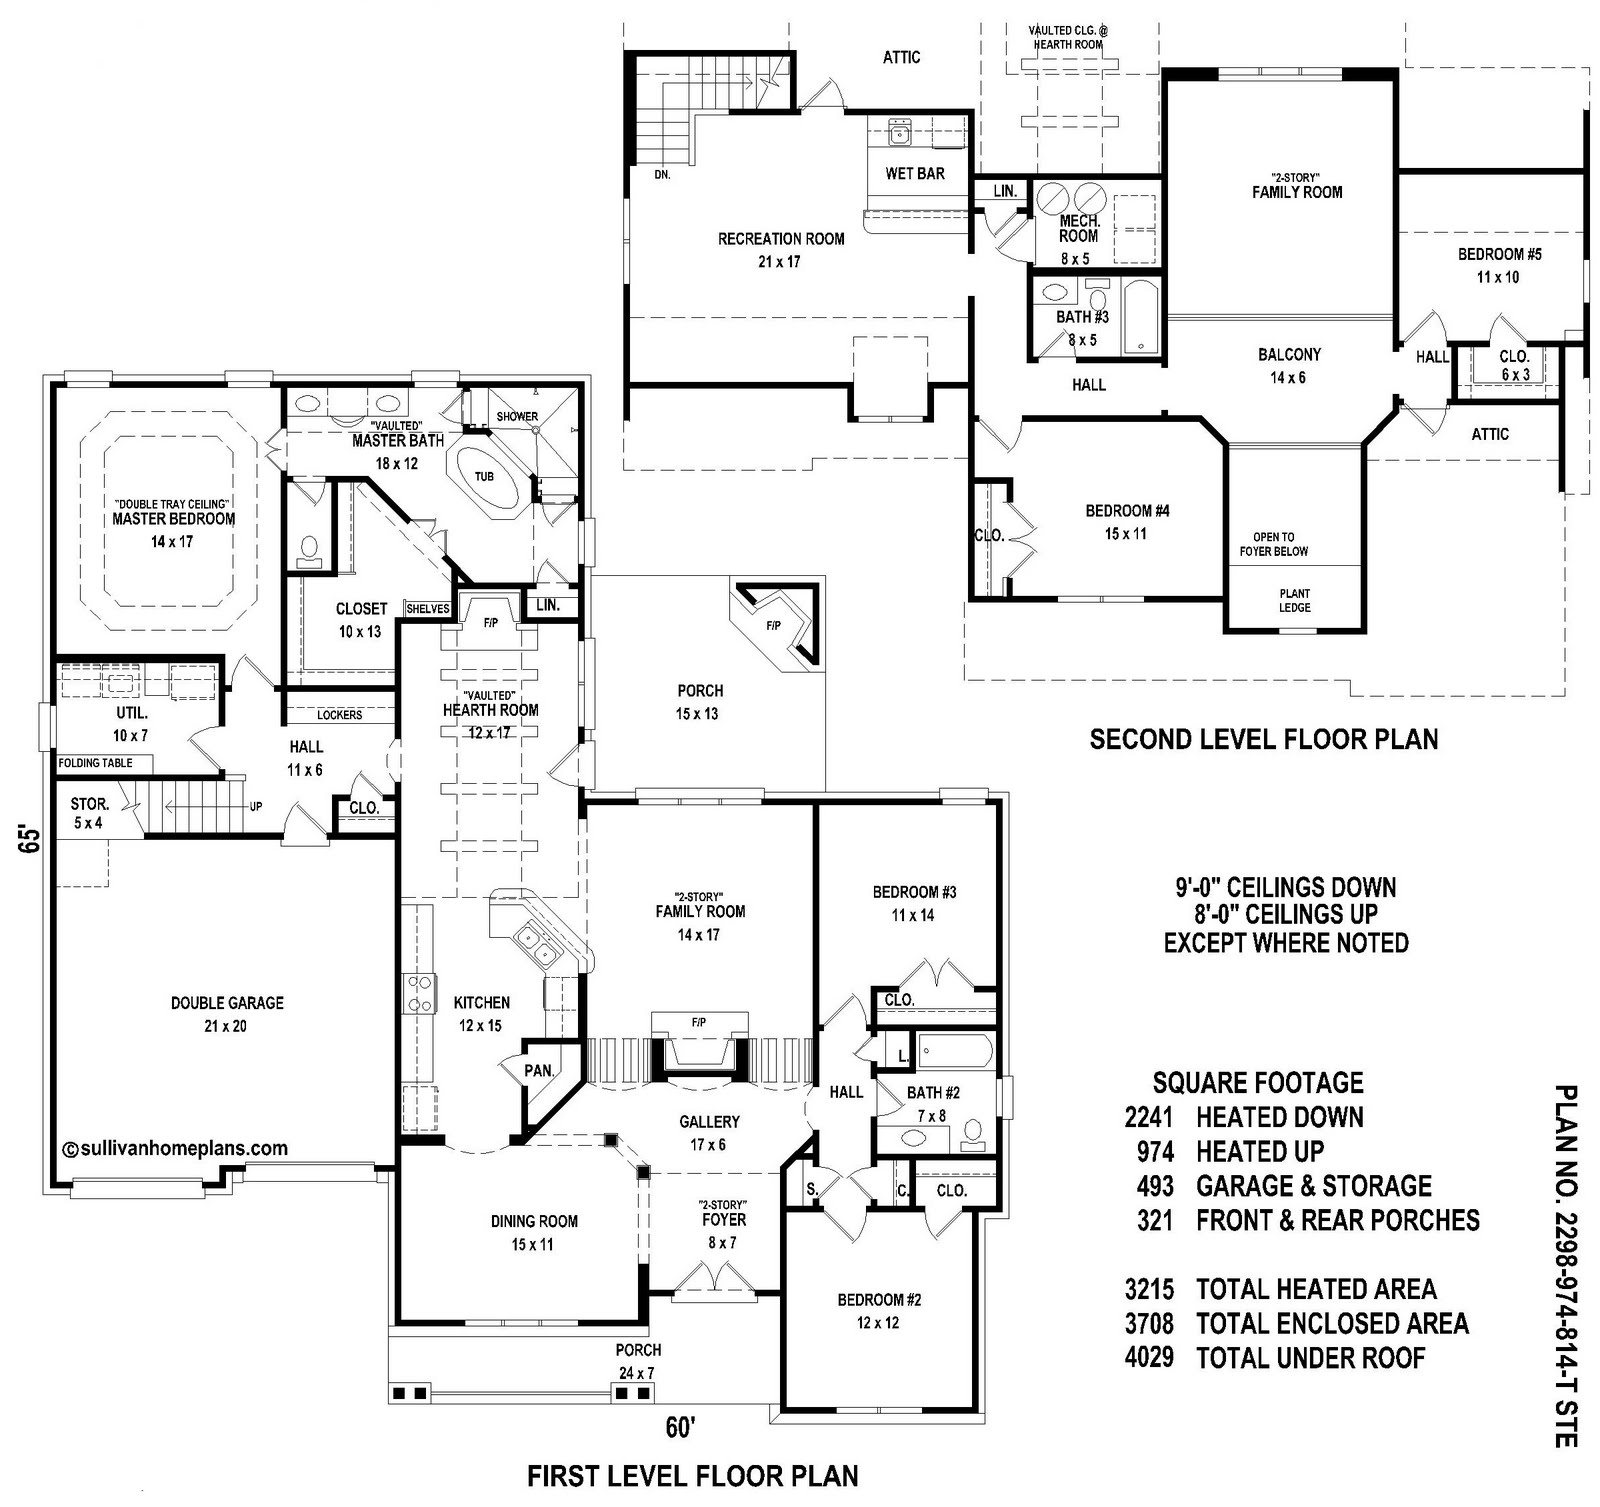 Sullivan home plans june 2010 for 5 bedroom home floor plans